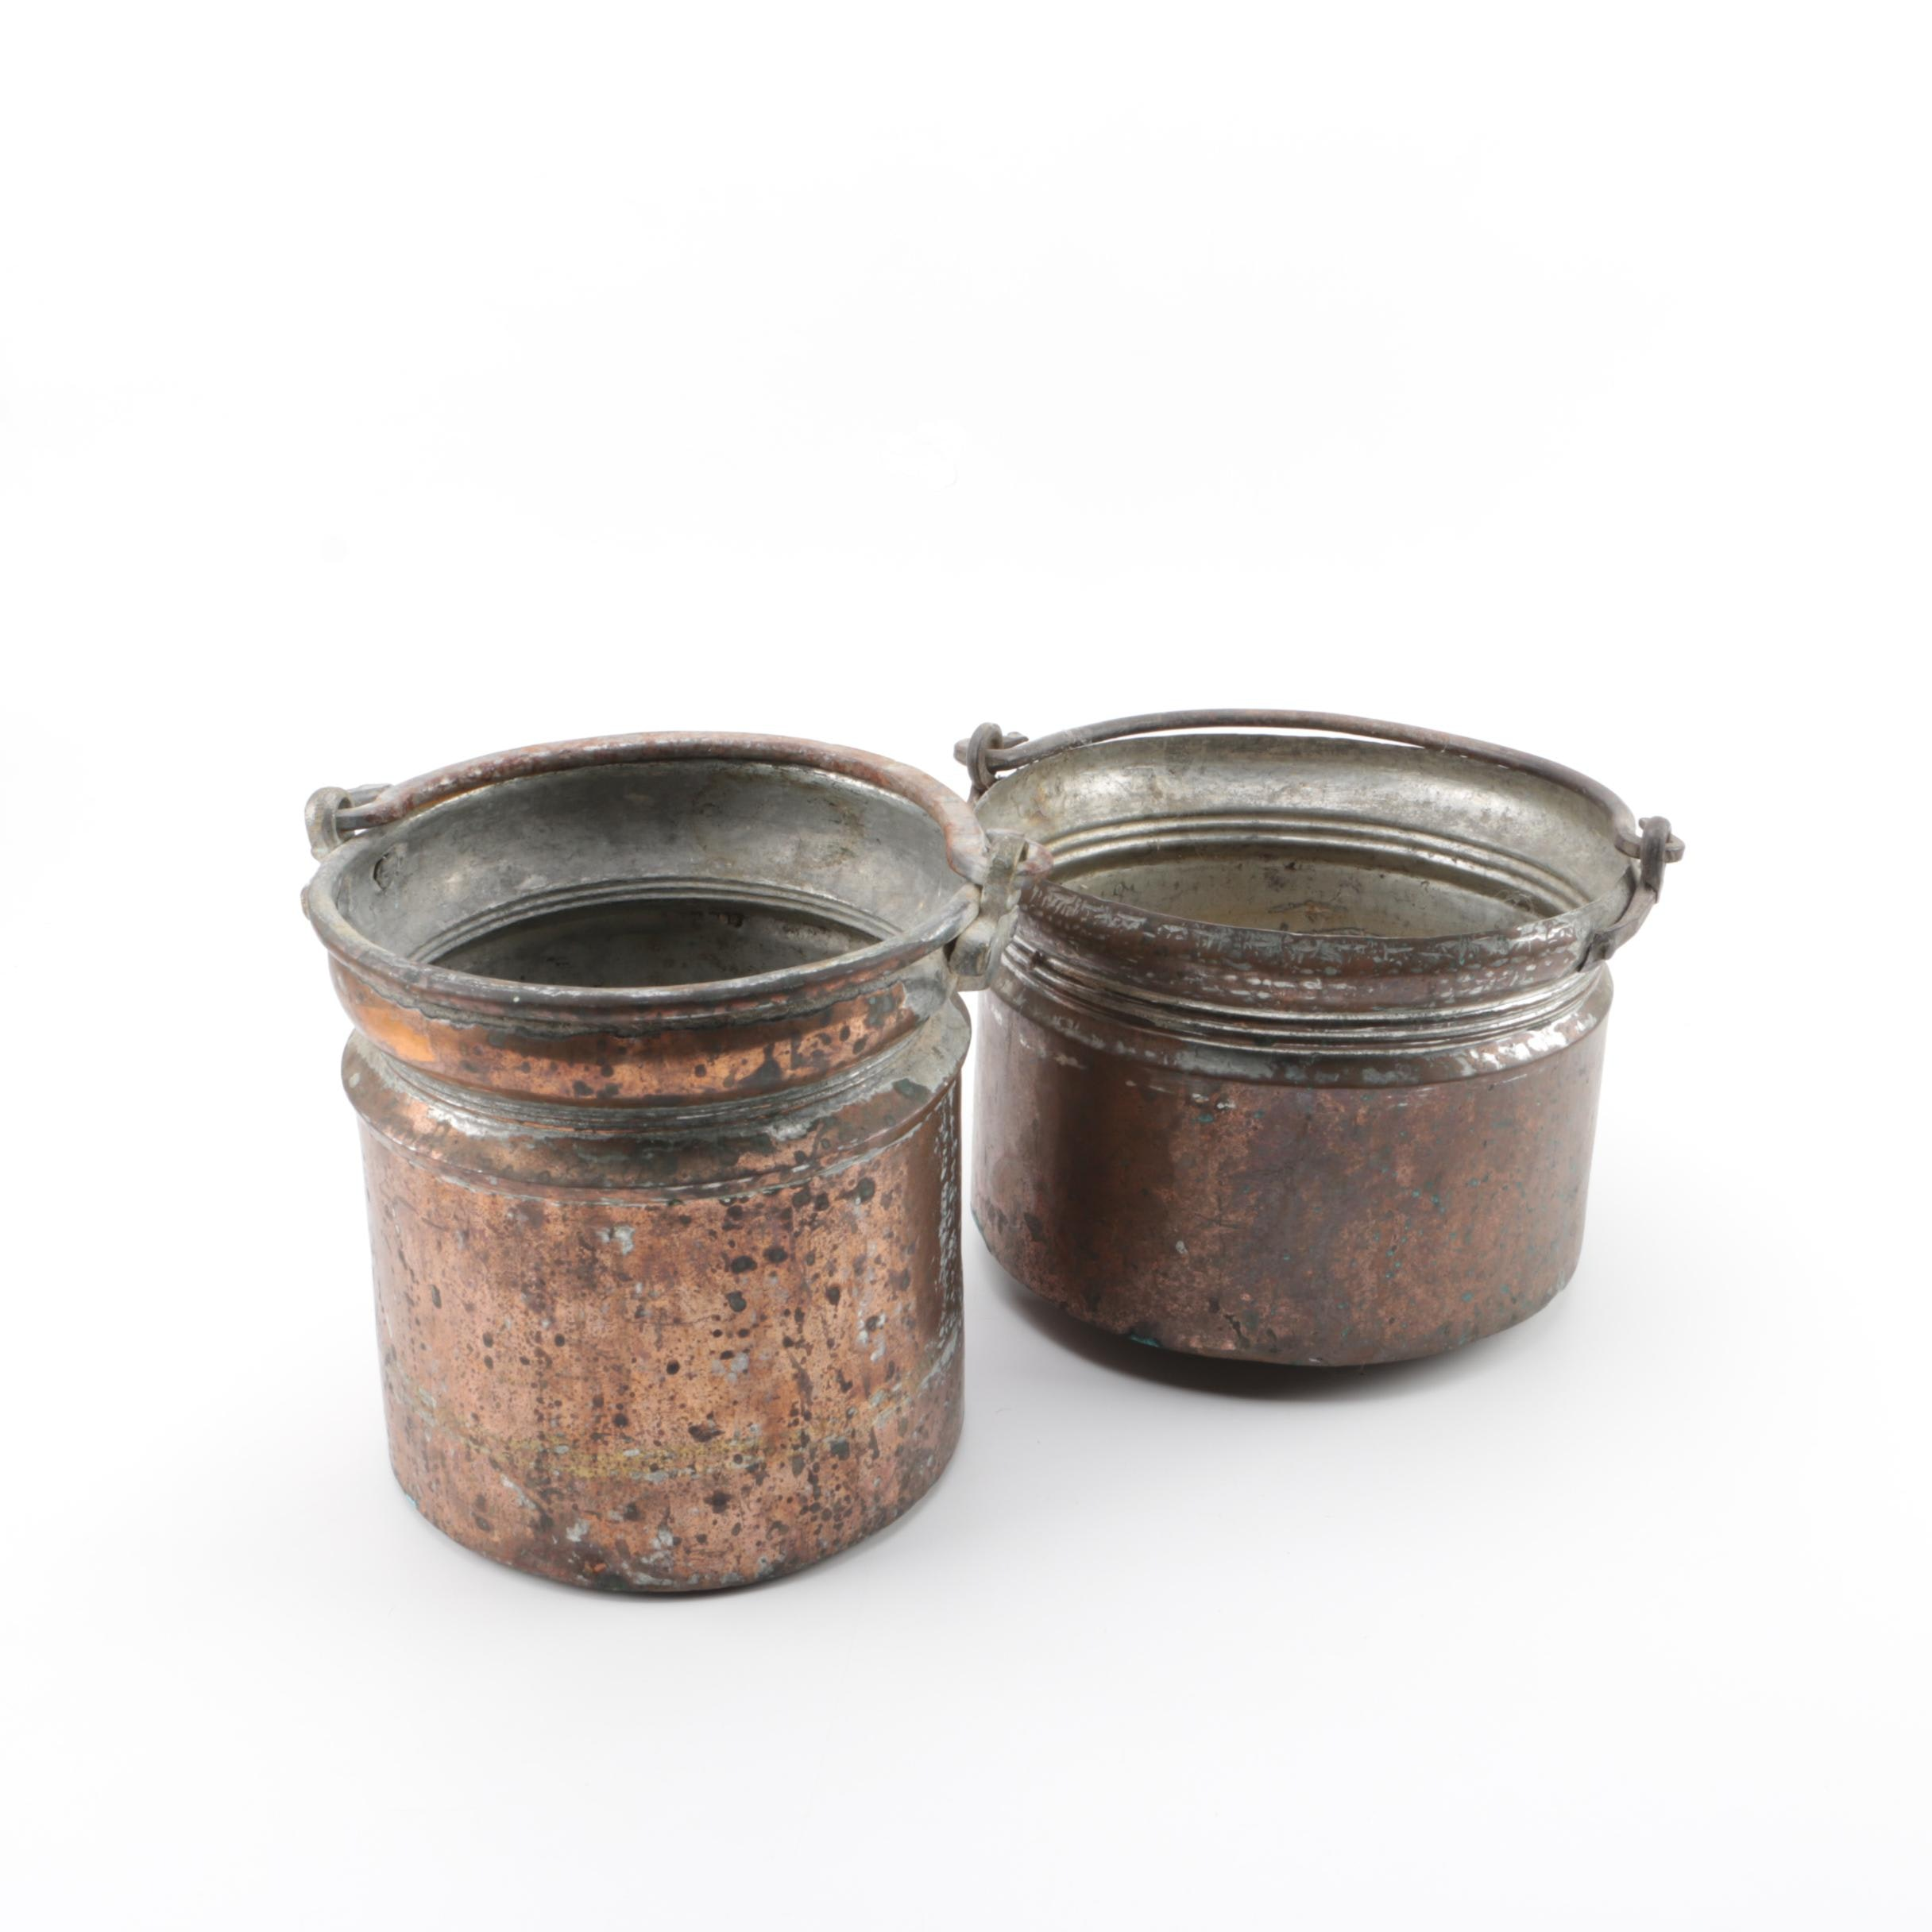 Vintage Tin Lined Copper Pails